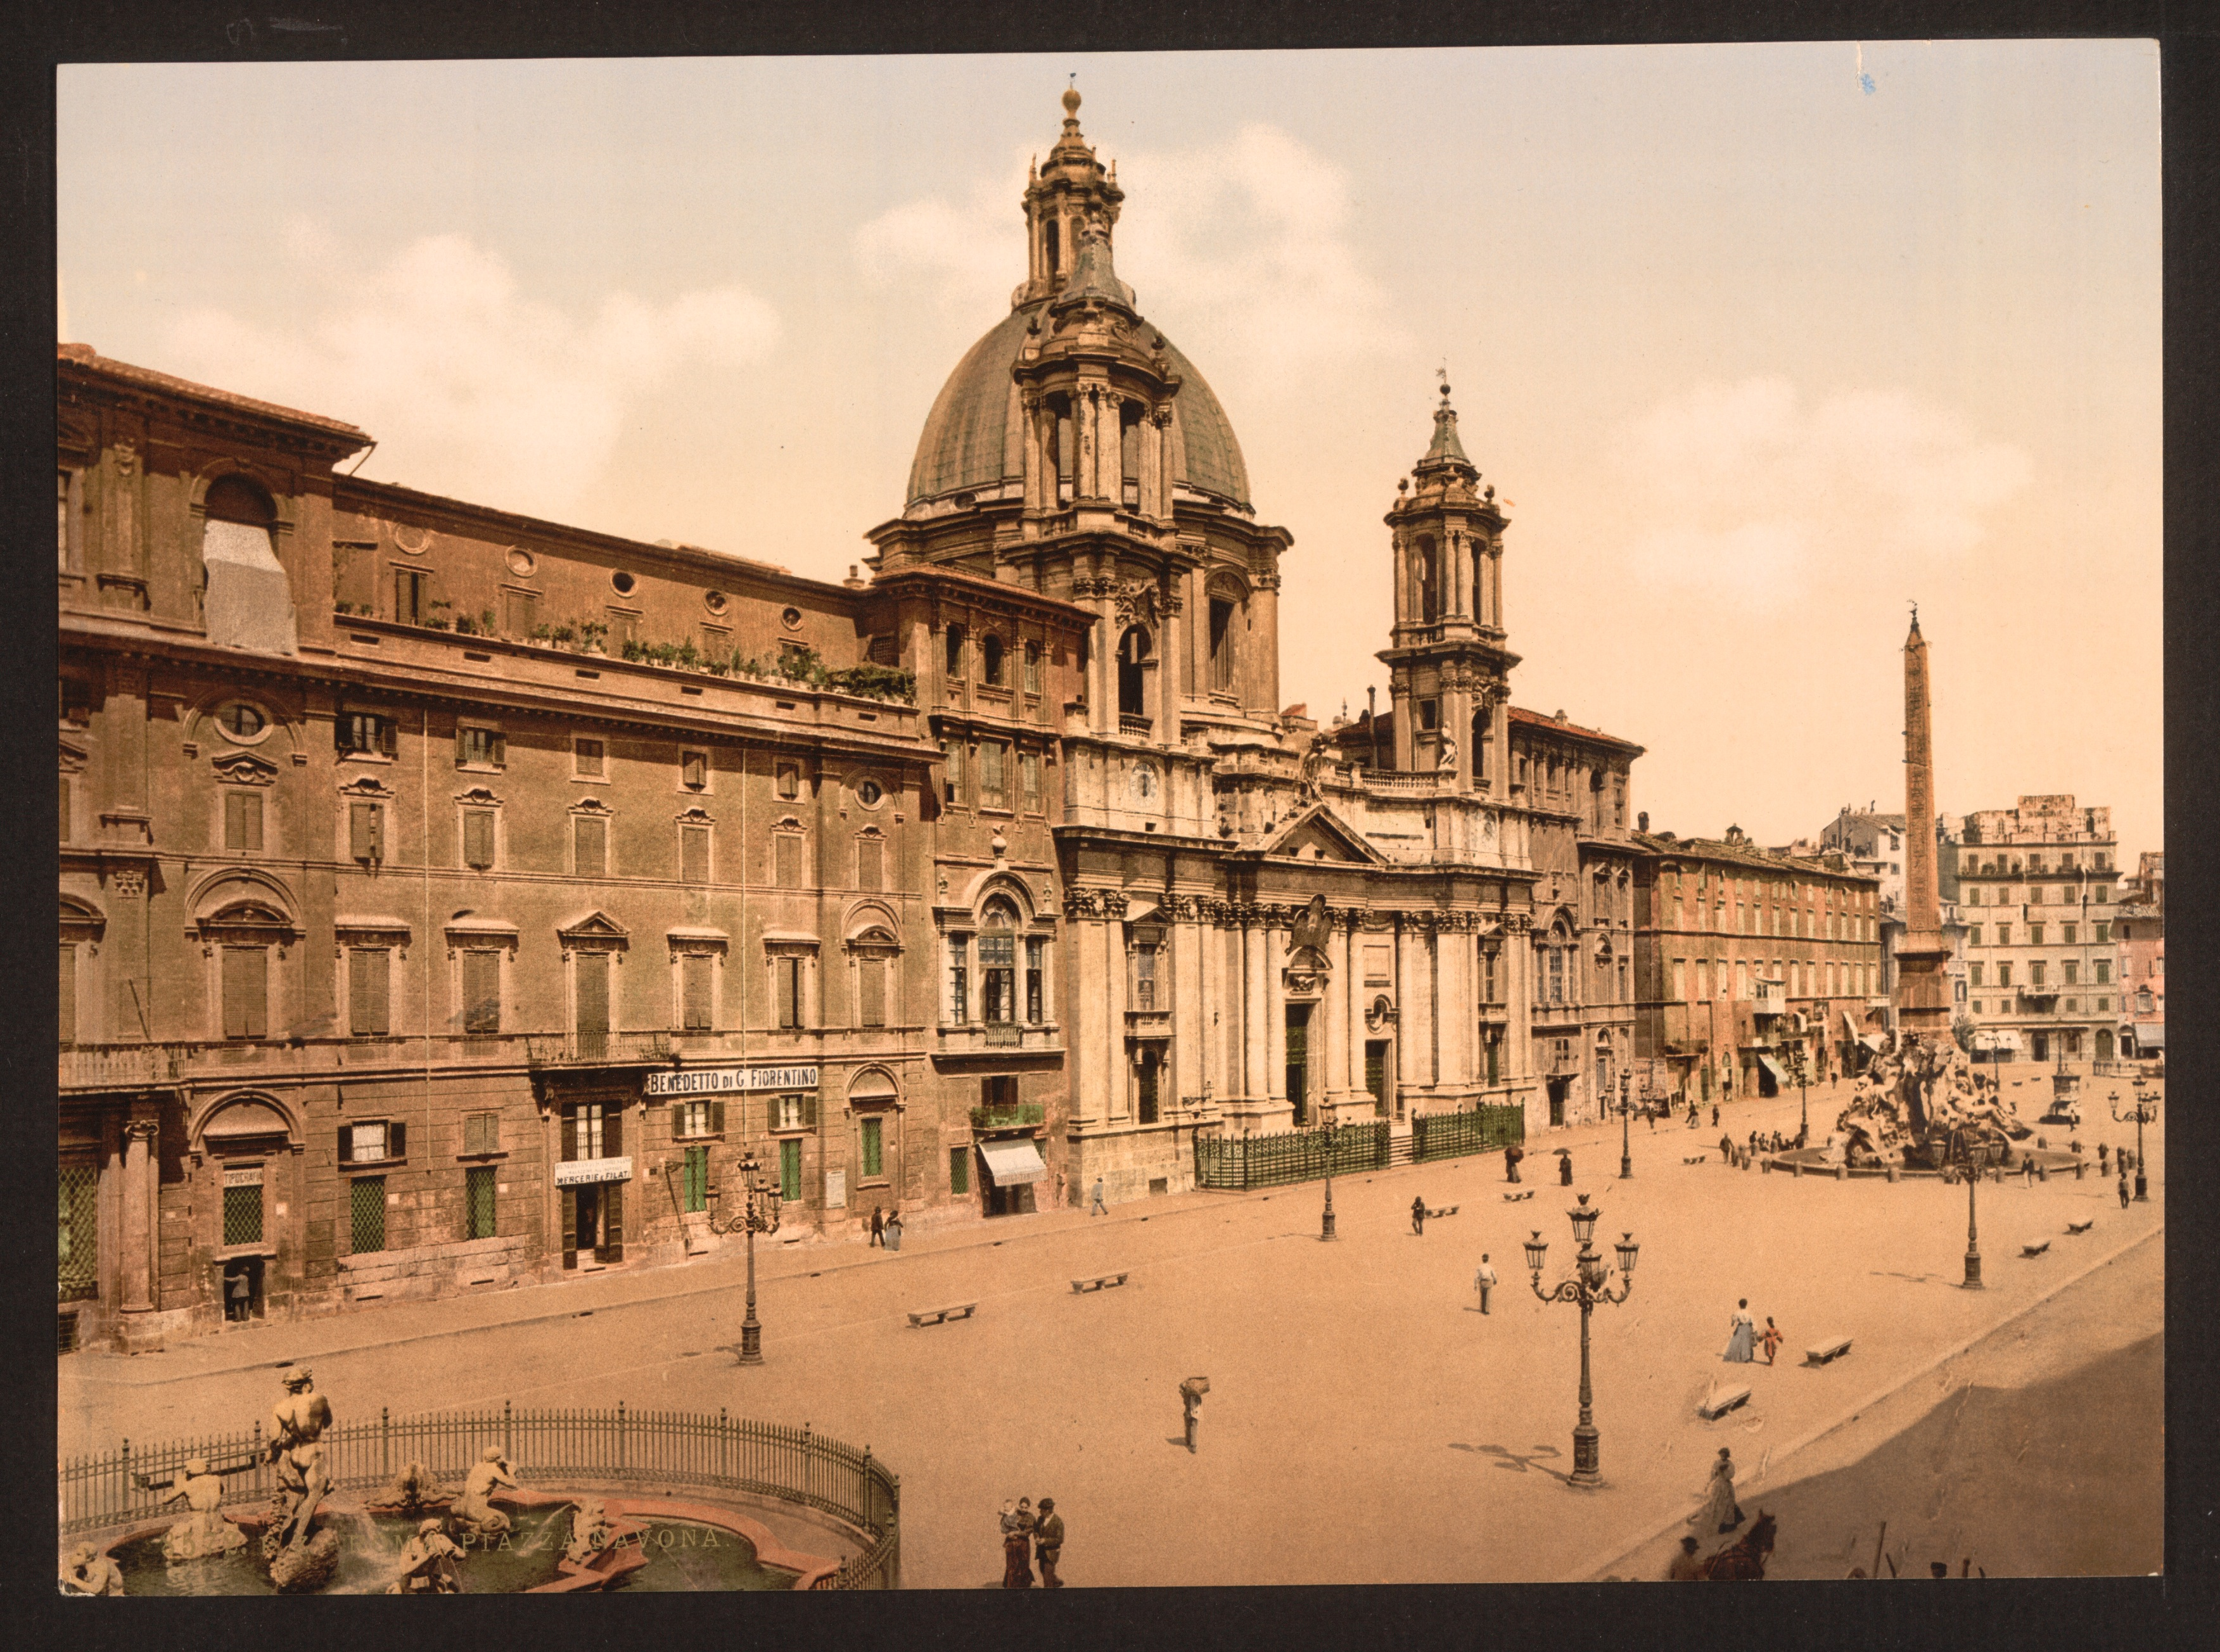 Piazza Navona in the 19th Century